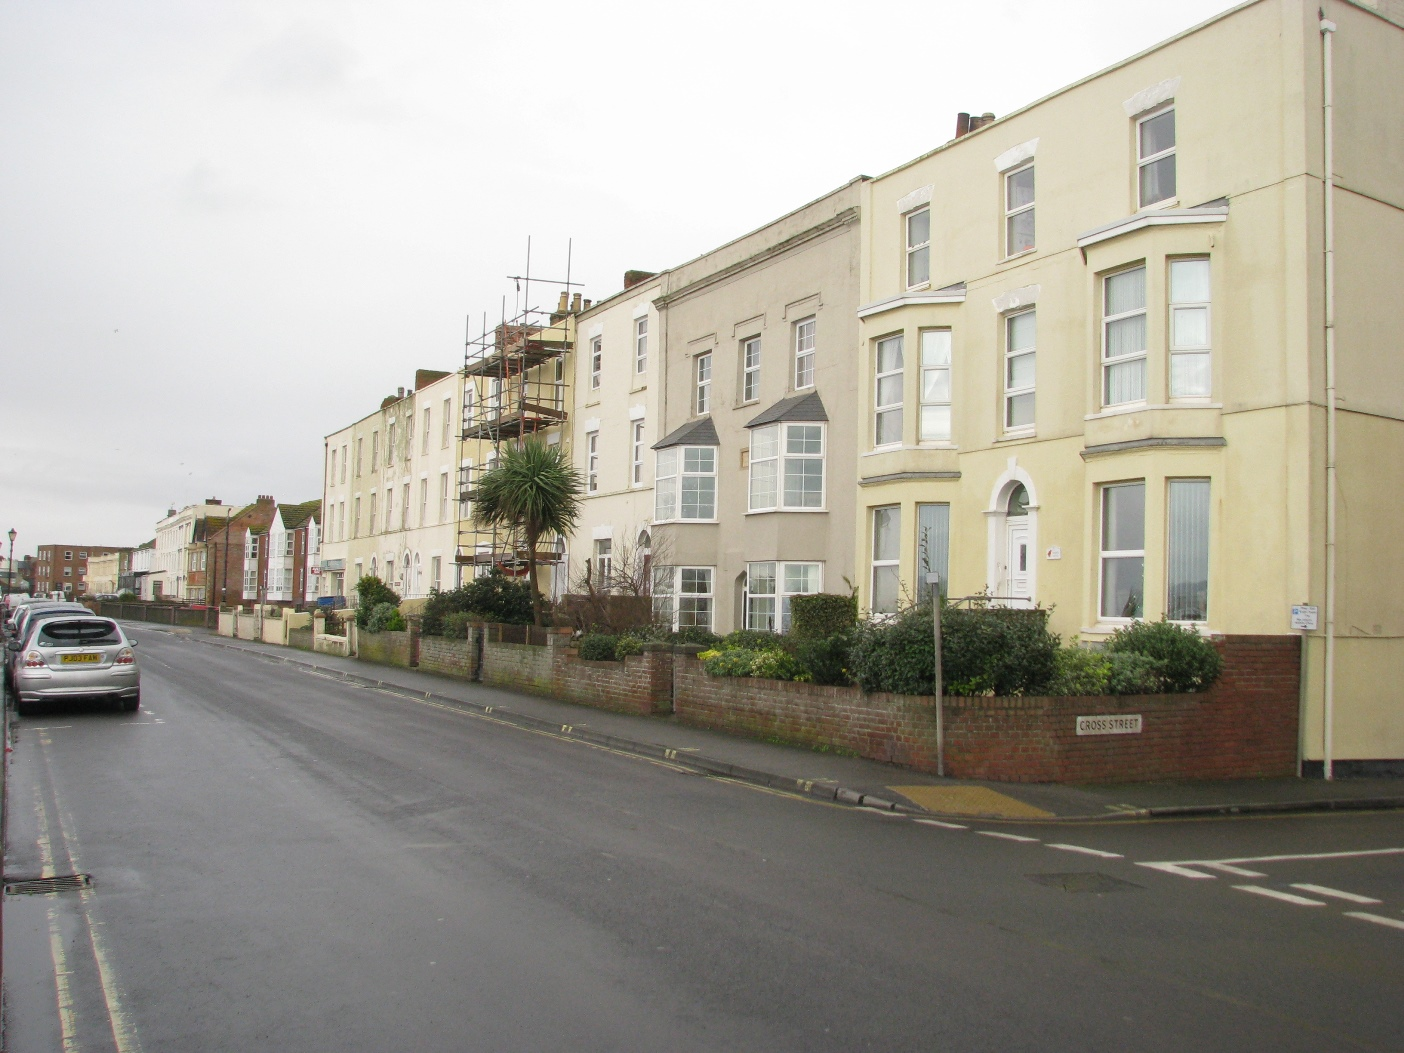 Osborne House as part of the Terrace between Cross Street and College Street